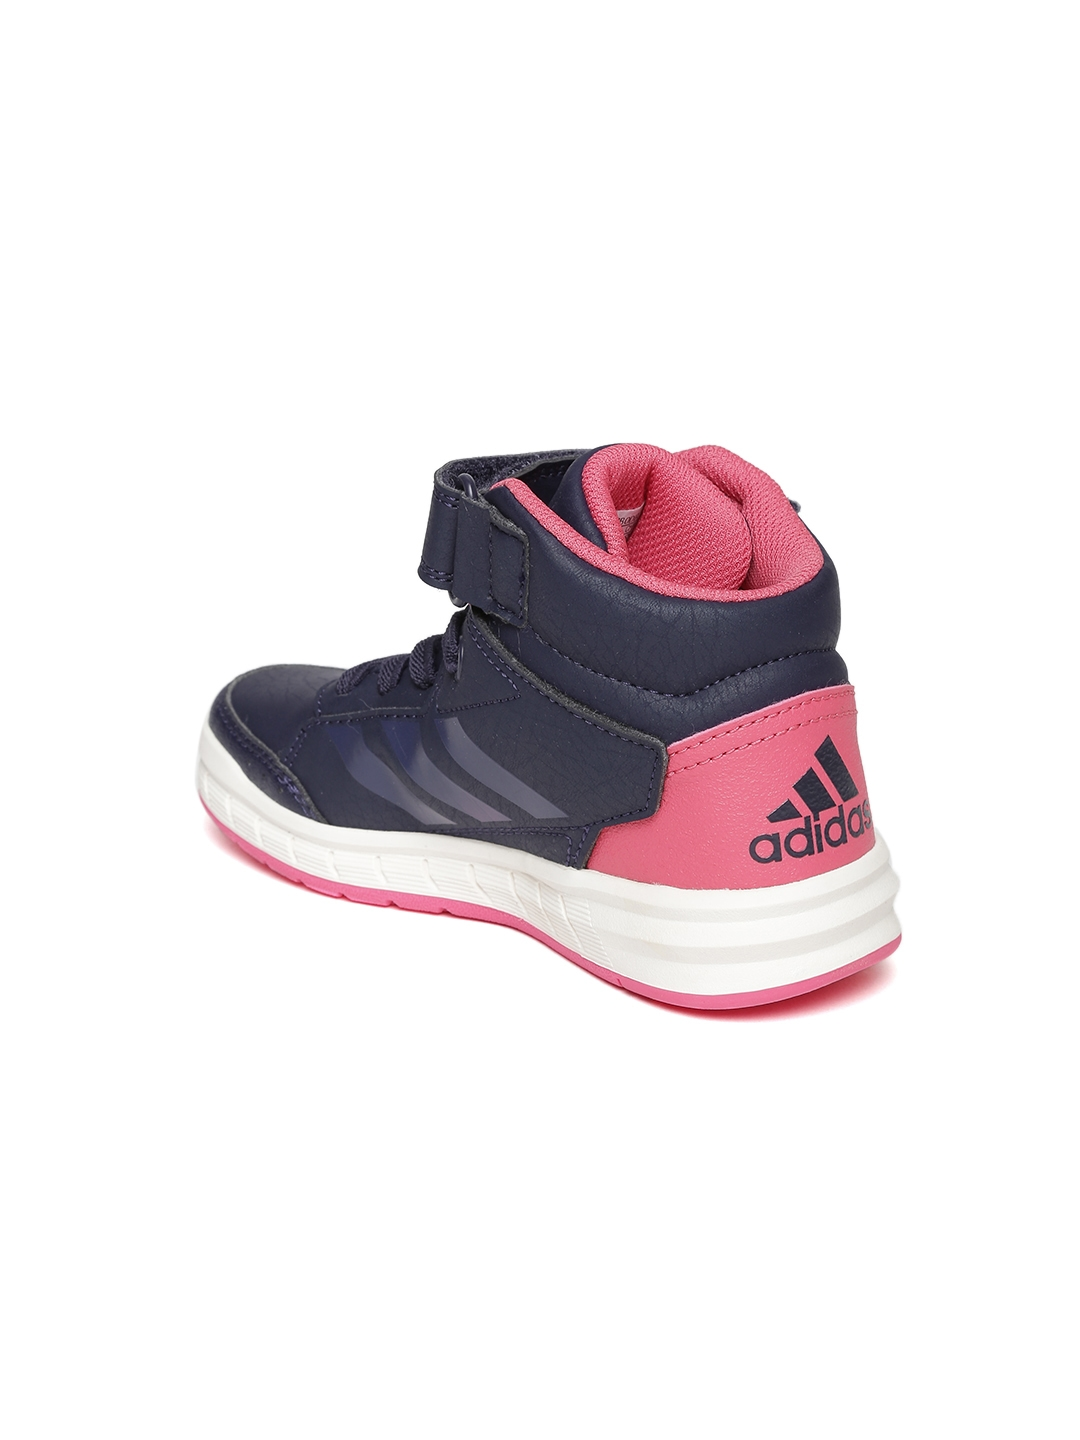 promo code 6082b c3234 ADIDAS Kids Navy ALTASPORT EL Mid-Top Training Shoes